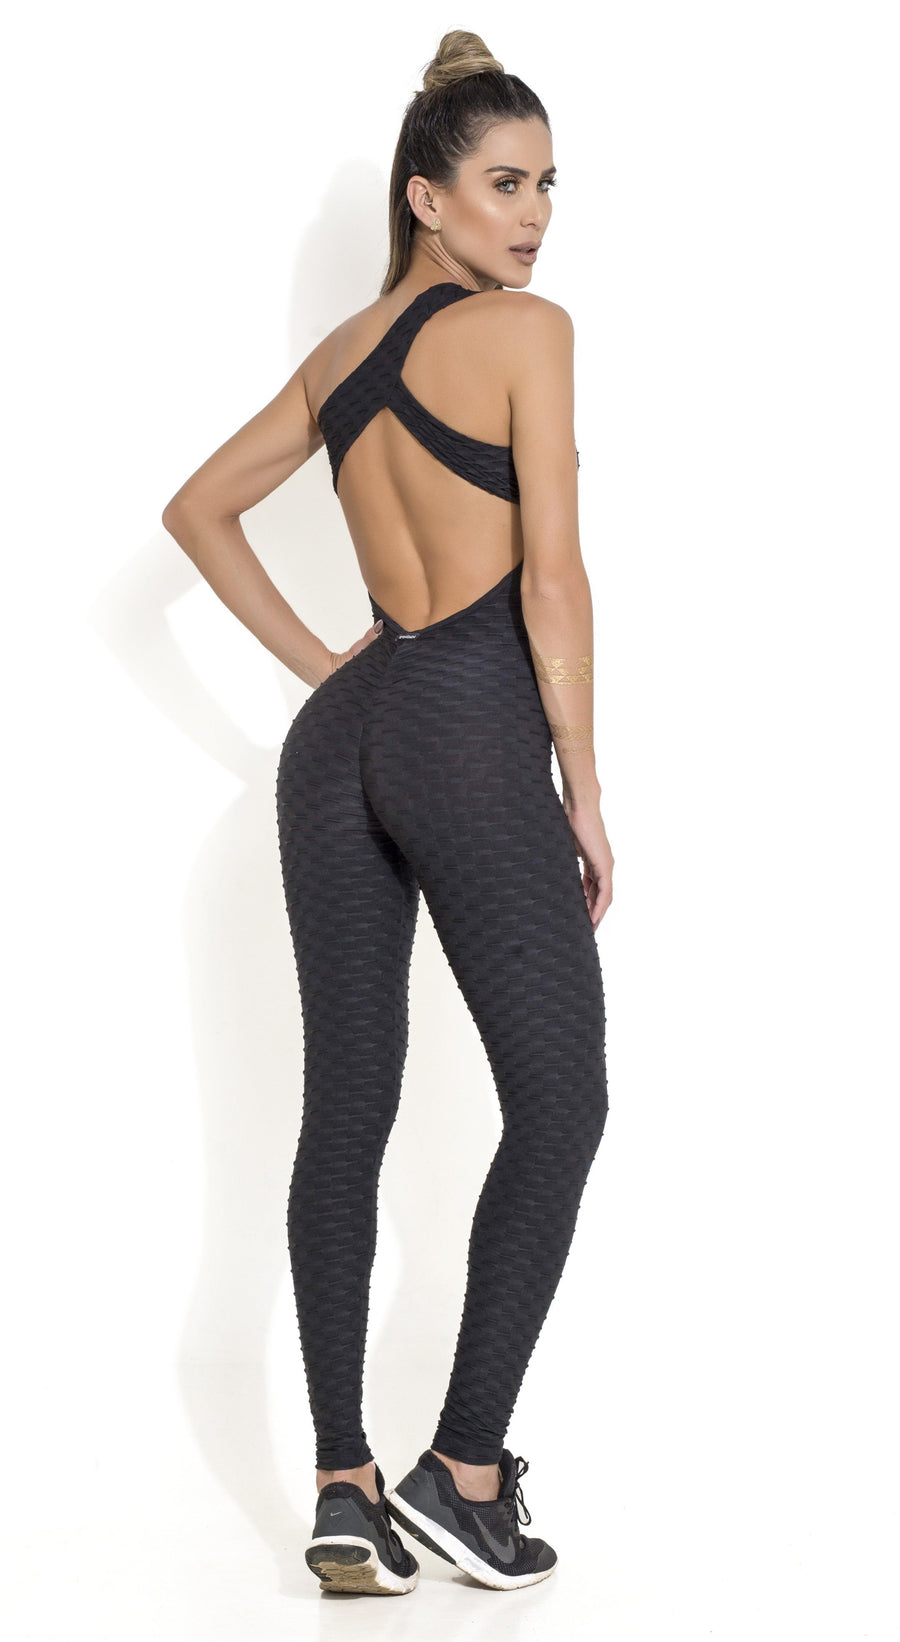 b12ee29cb49d Fitness Jumpsuit - Honeycomb Scrunch Booty One Piece Black